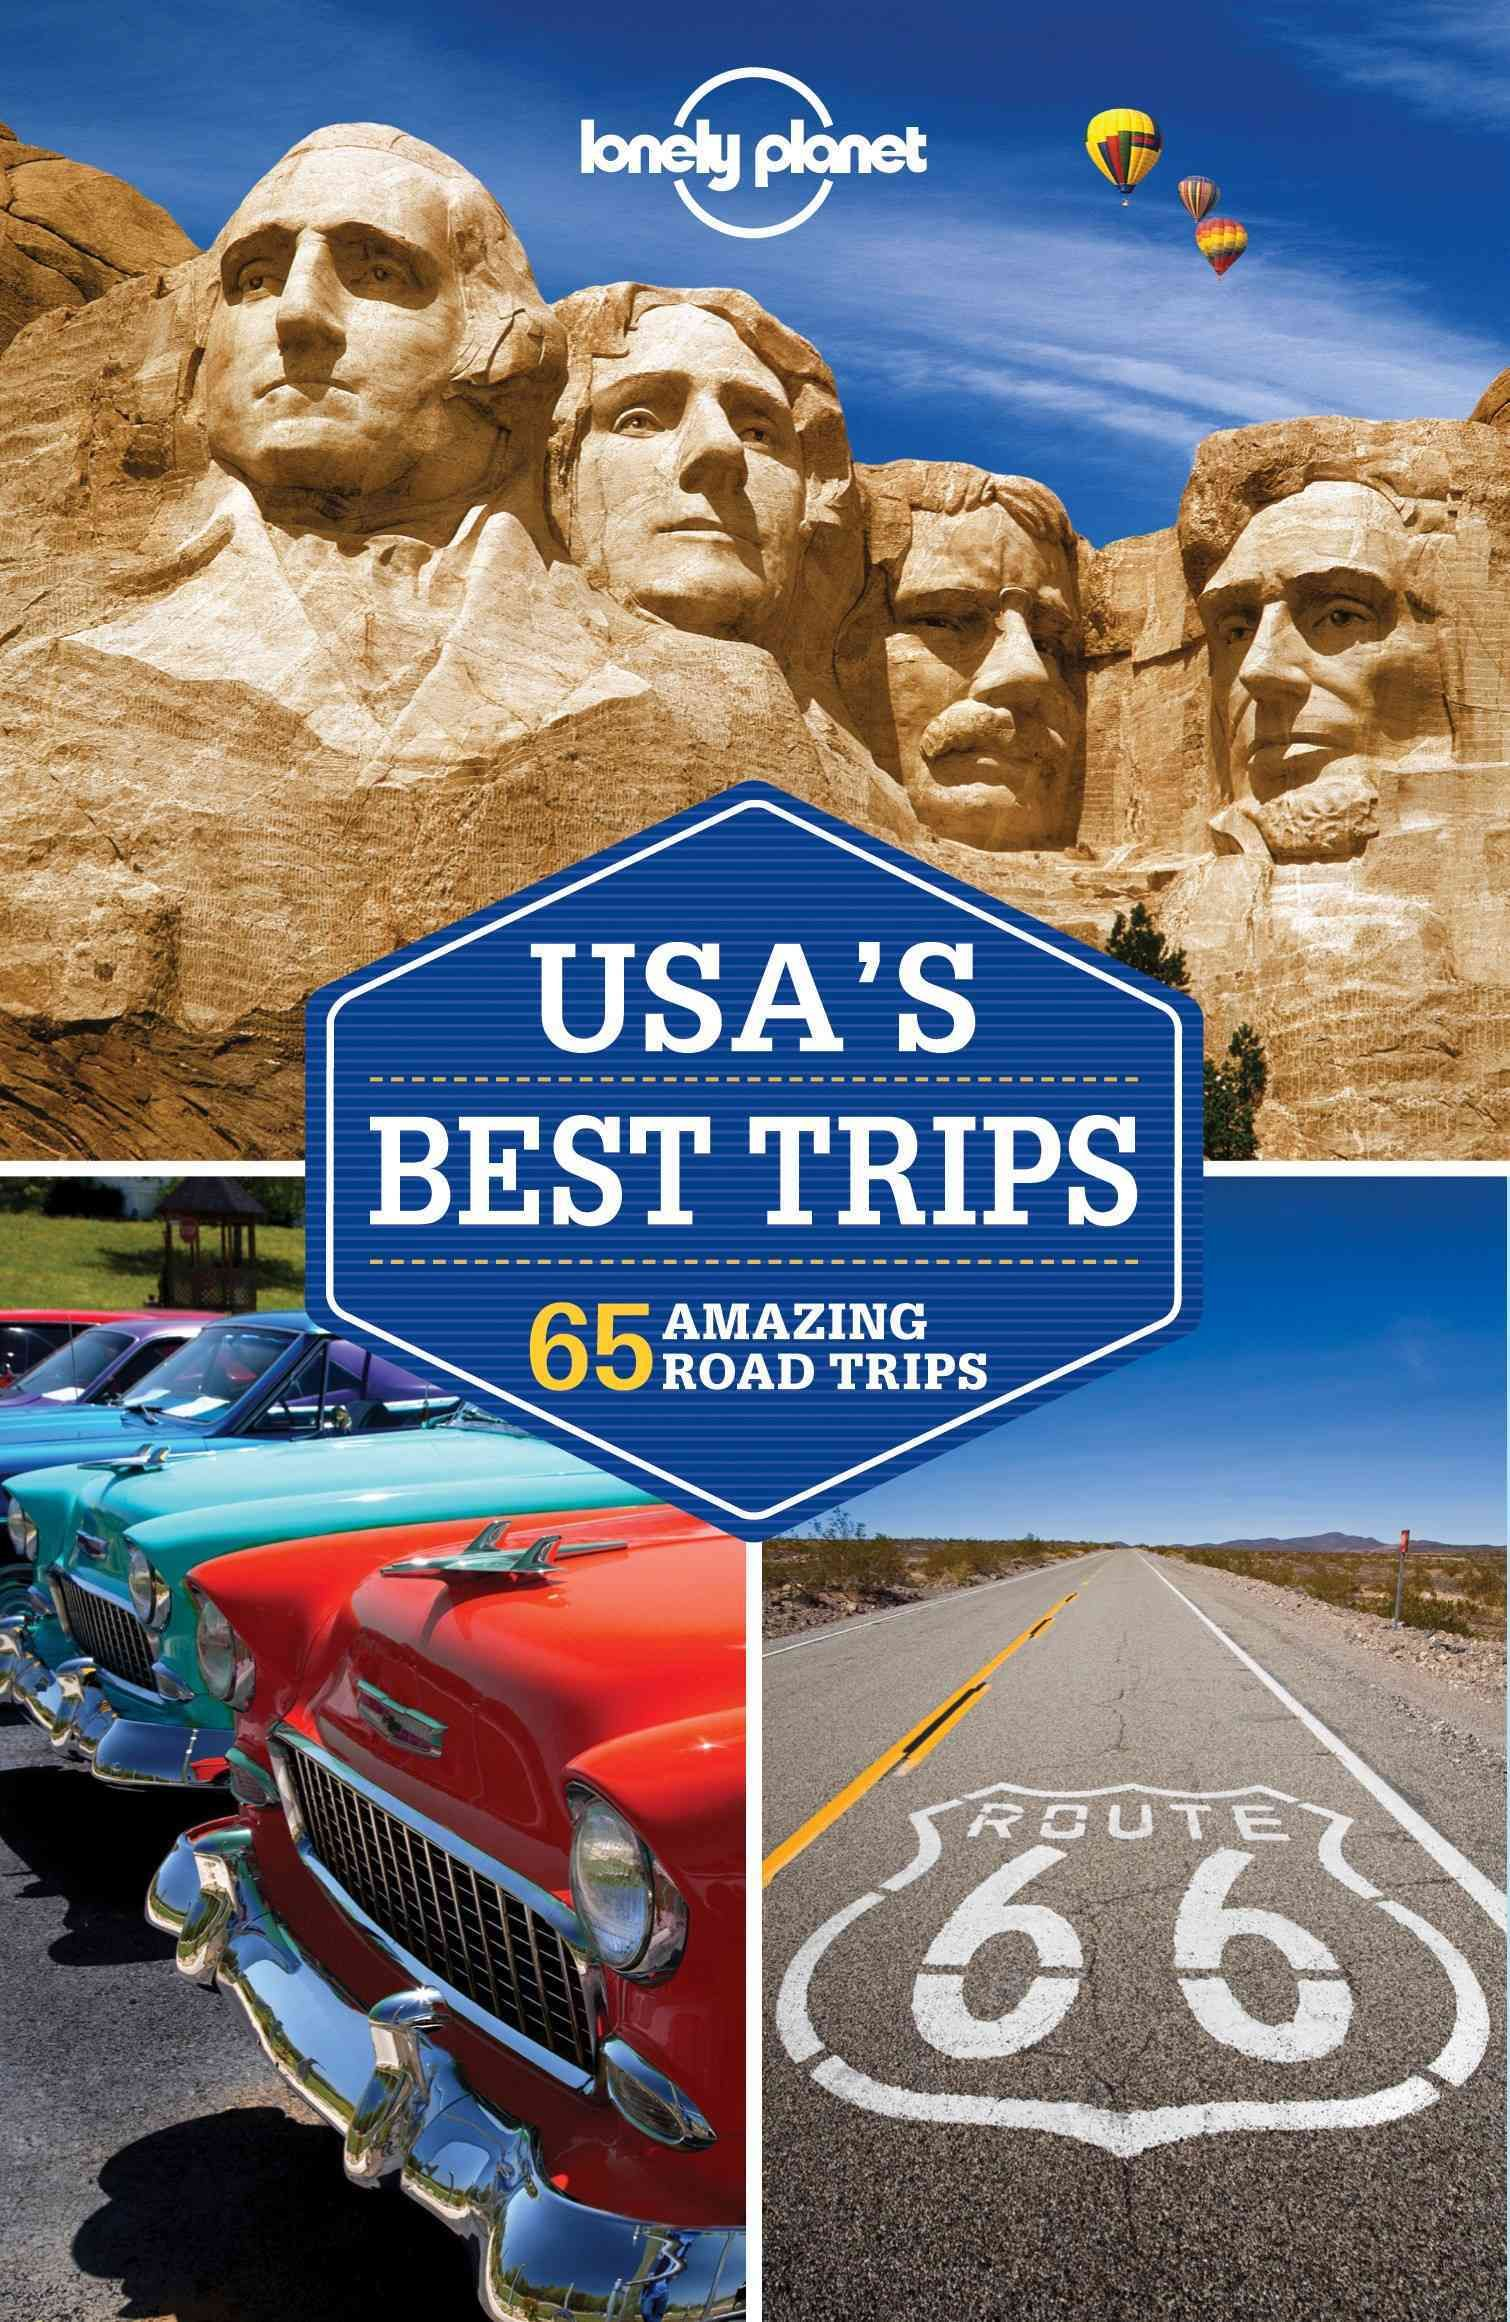 lonely planet usa s best trips 52 amazing road trips